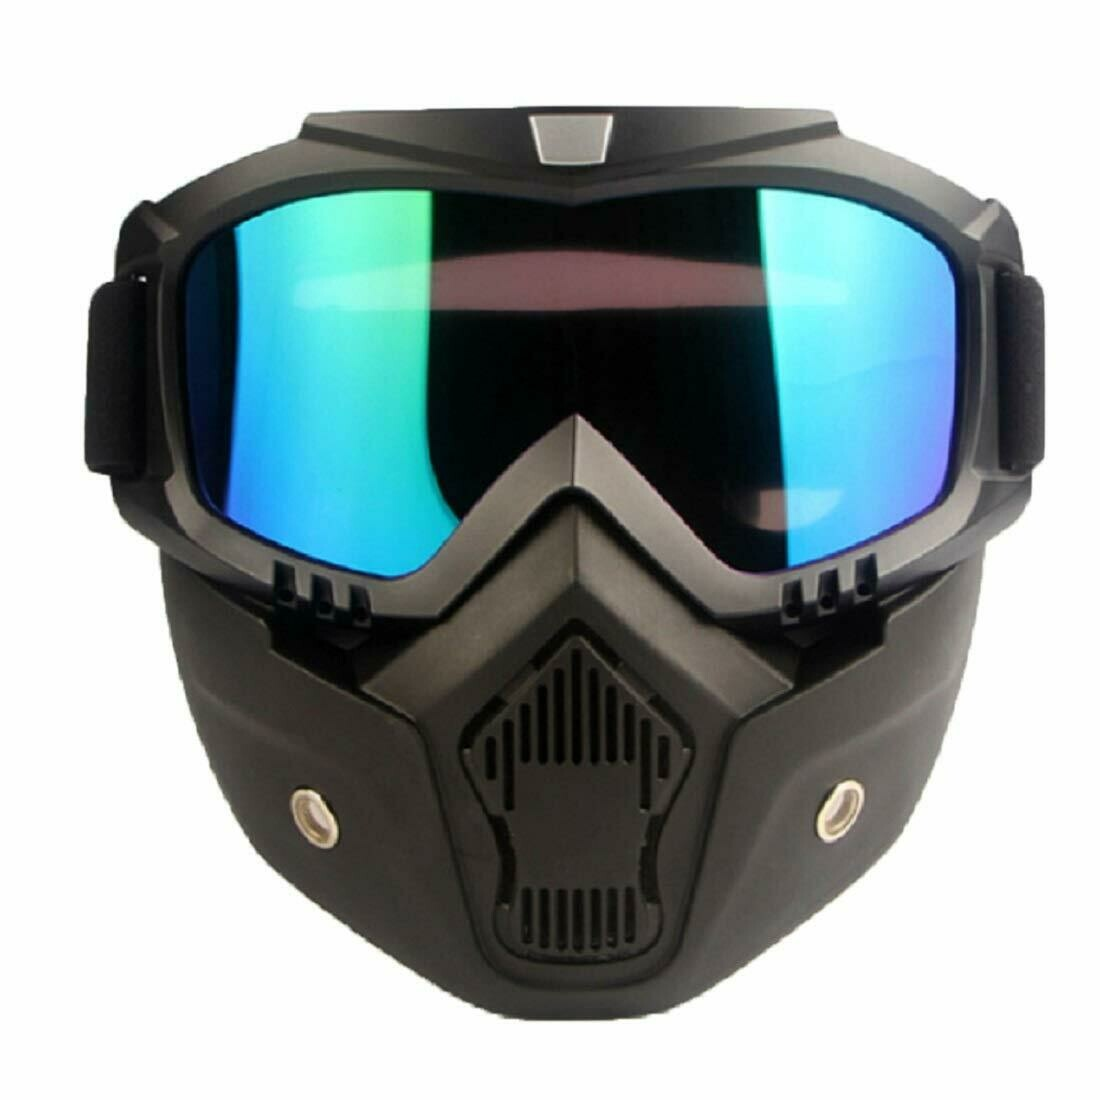 Mortorcycle Mask Detachable Goggles and Mouth Filter black